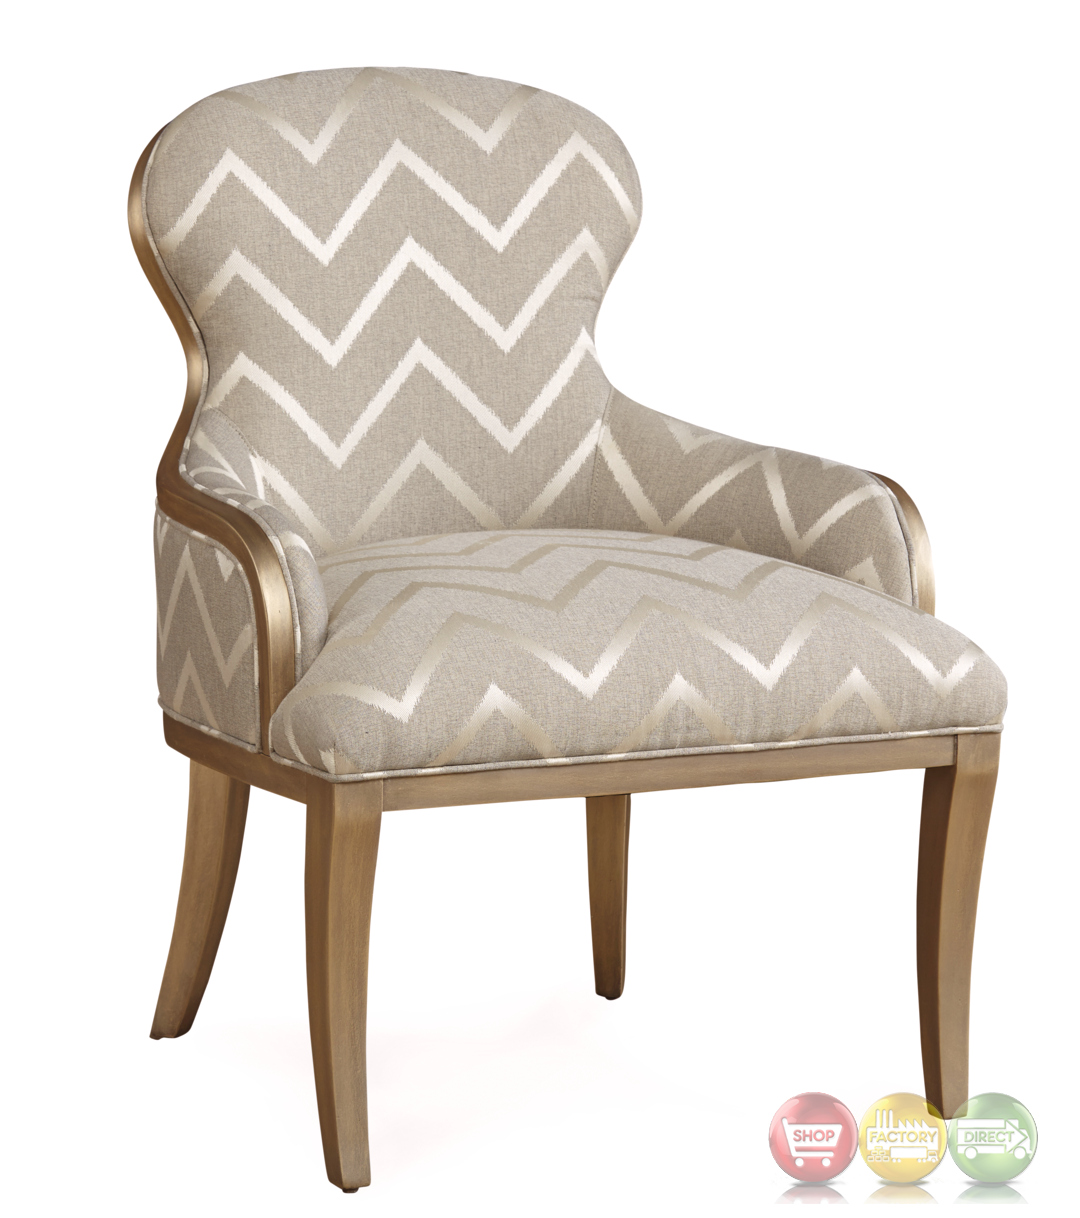 The Foundry French Chevron Accent Chair In Grey And Champagne